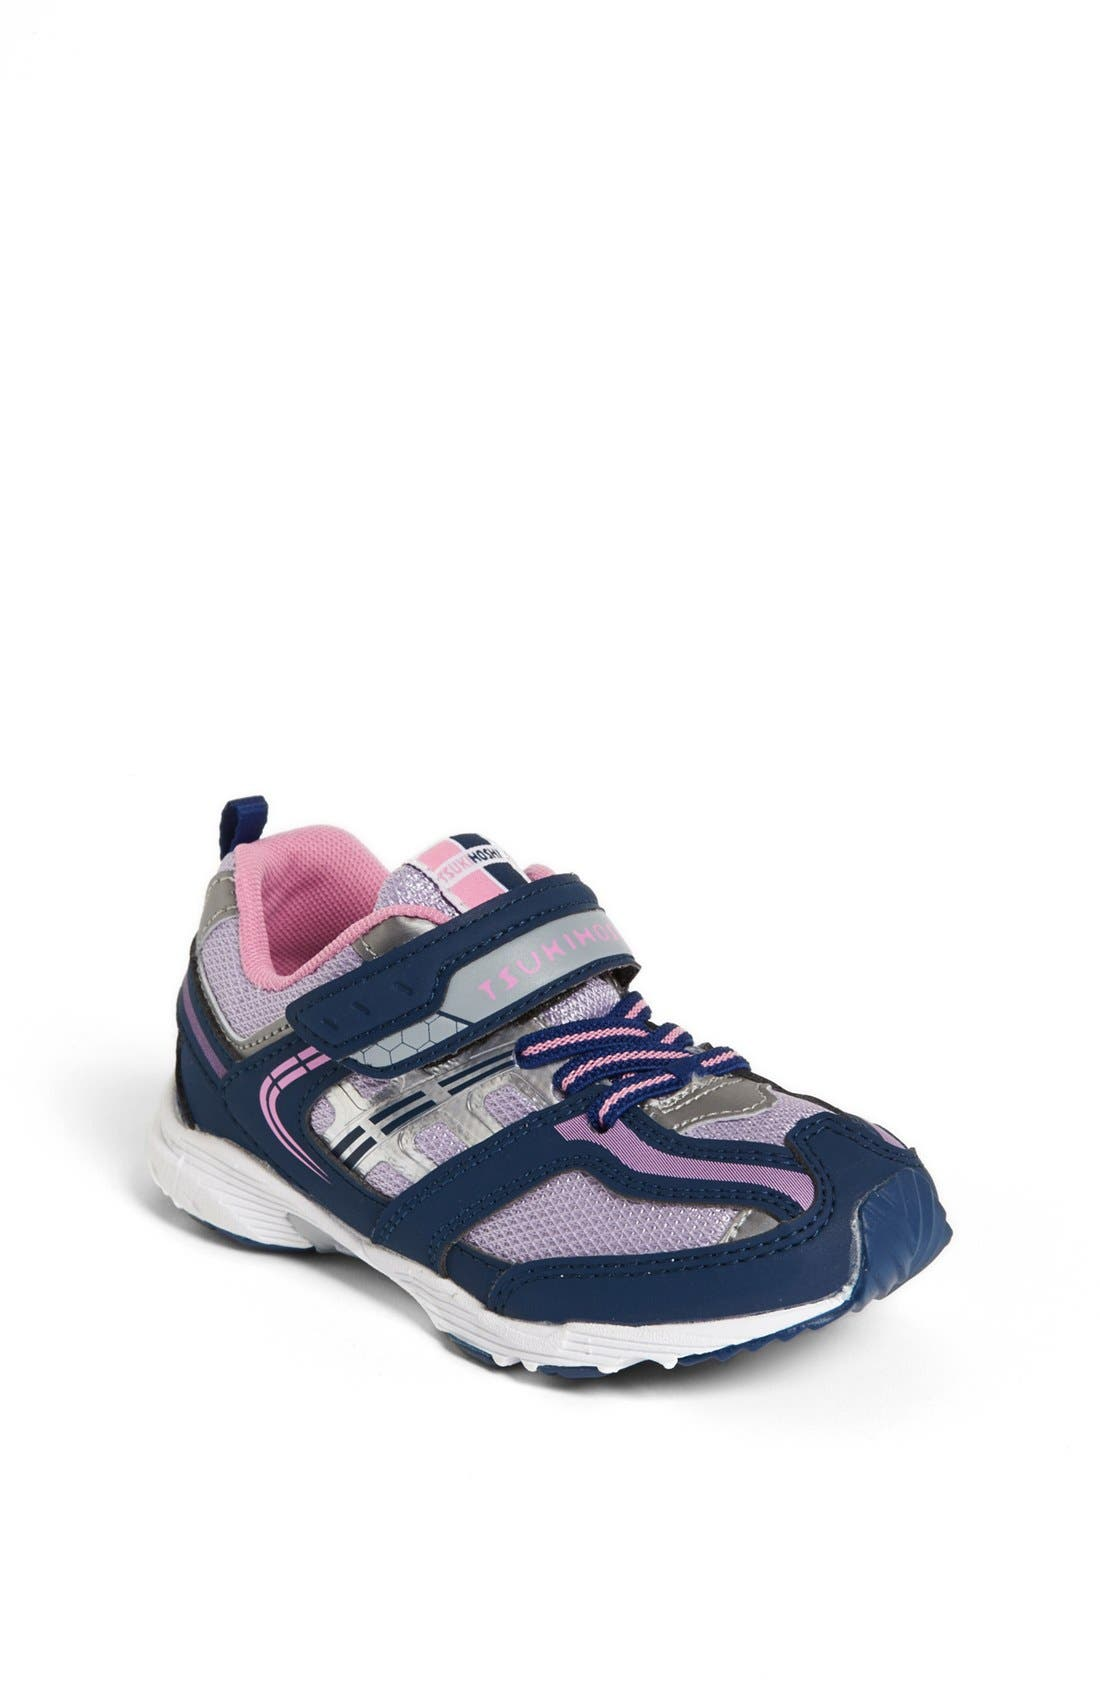 Alternate Image 1 Selected - Tsukihoshi 'Child 36' Sneaker (Toddler & Little Kid)